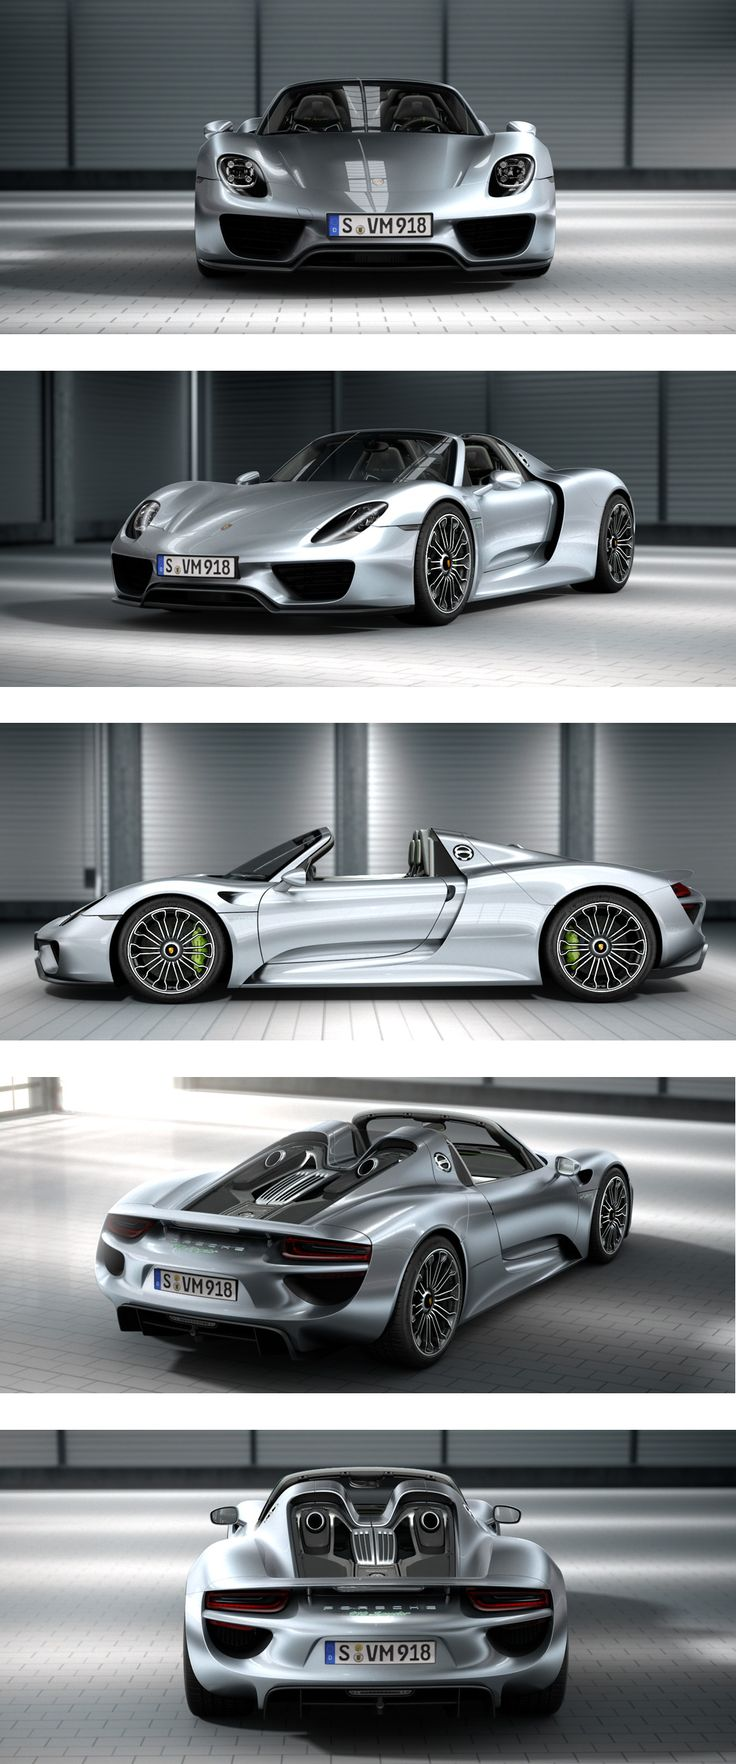 Wow! The 10 Most Expensive Cars In The World For 2014! Can you afford any of these? Hit the image to find out... #Porsche918Spyder